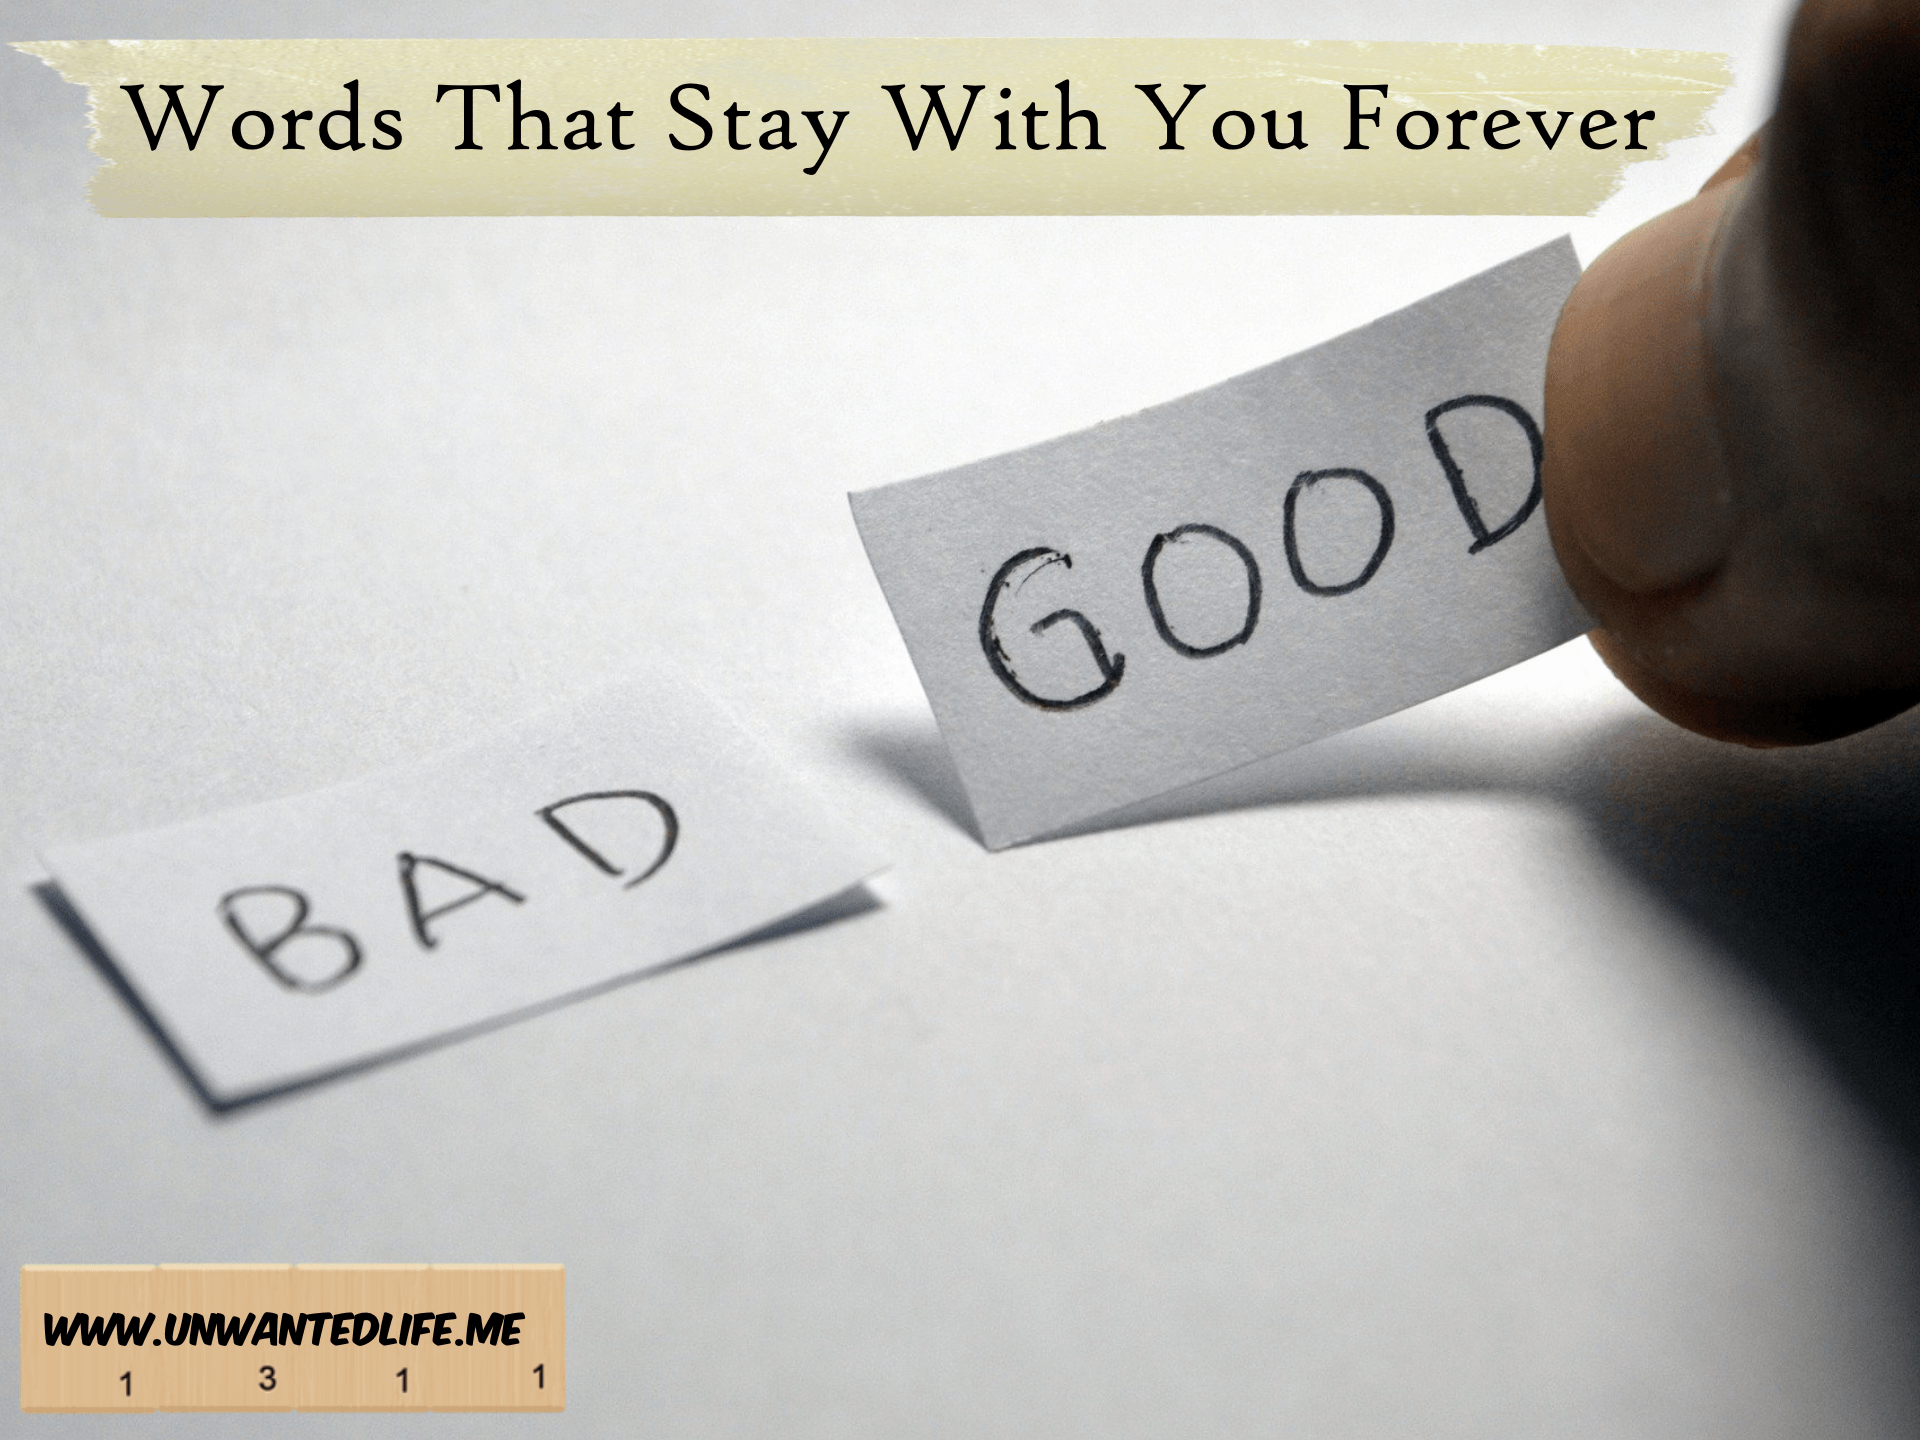 Words That Stay With You Forever | Mental Health and Wellness | Unwanted Life